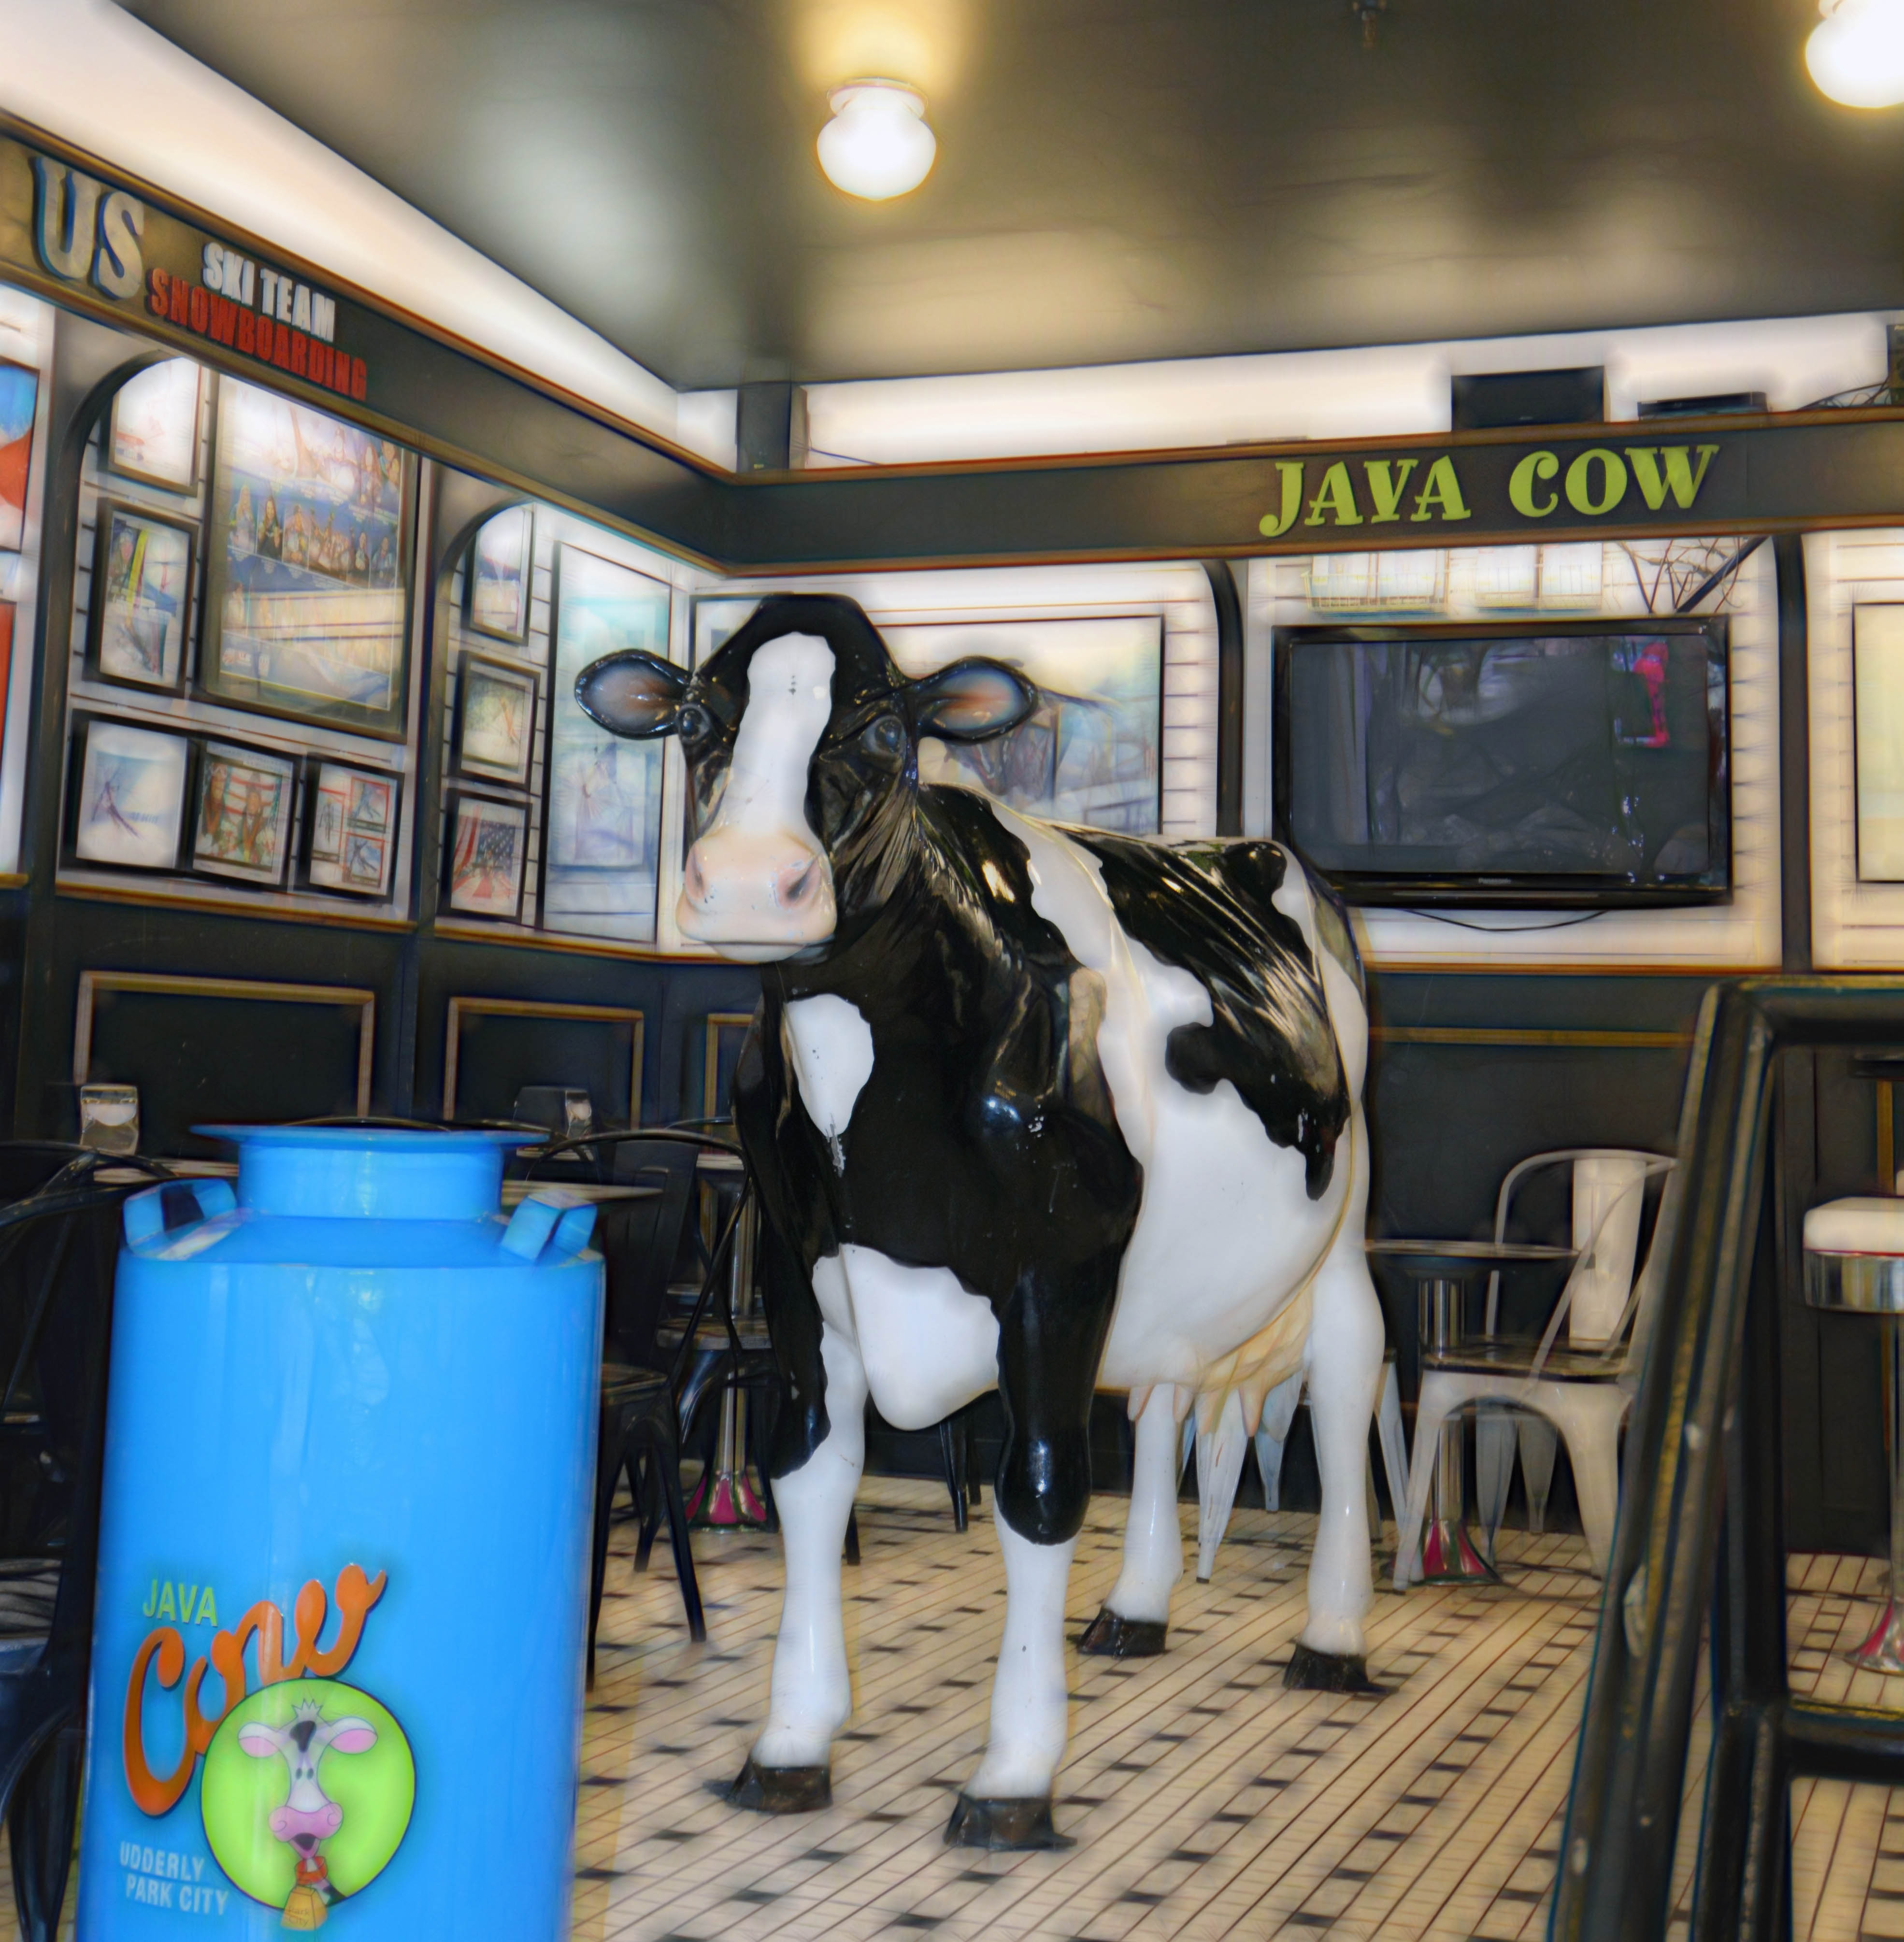 FOTS-Java Cow On Main